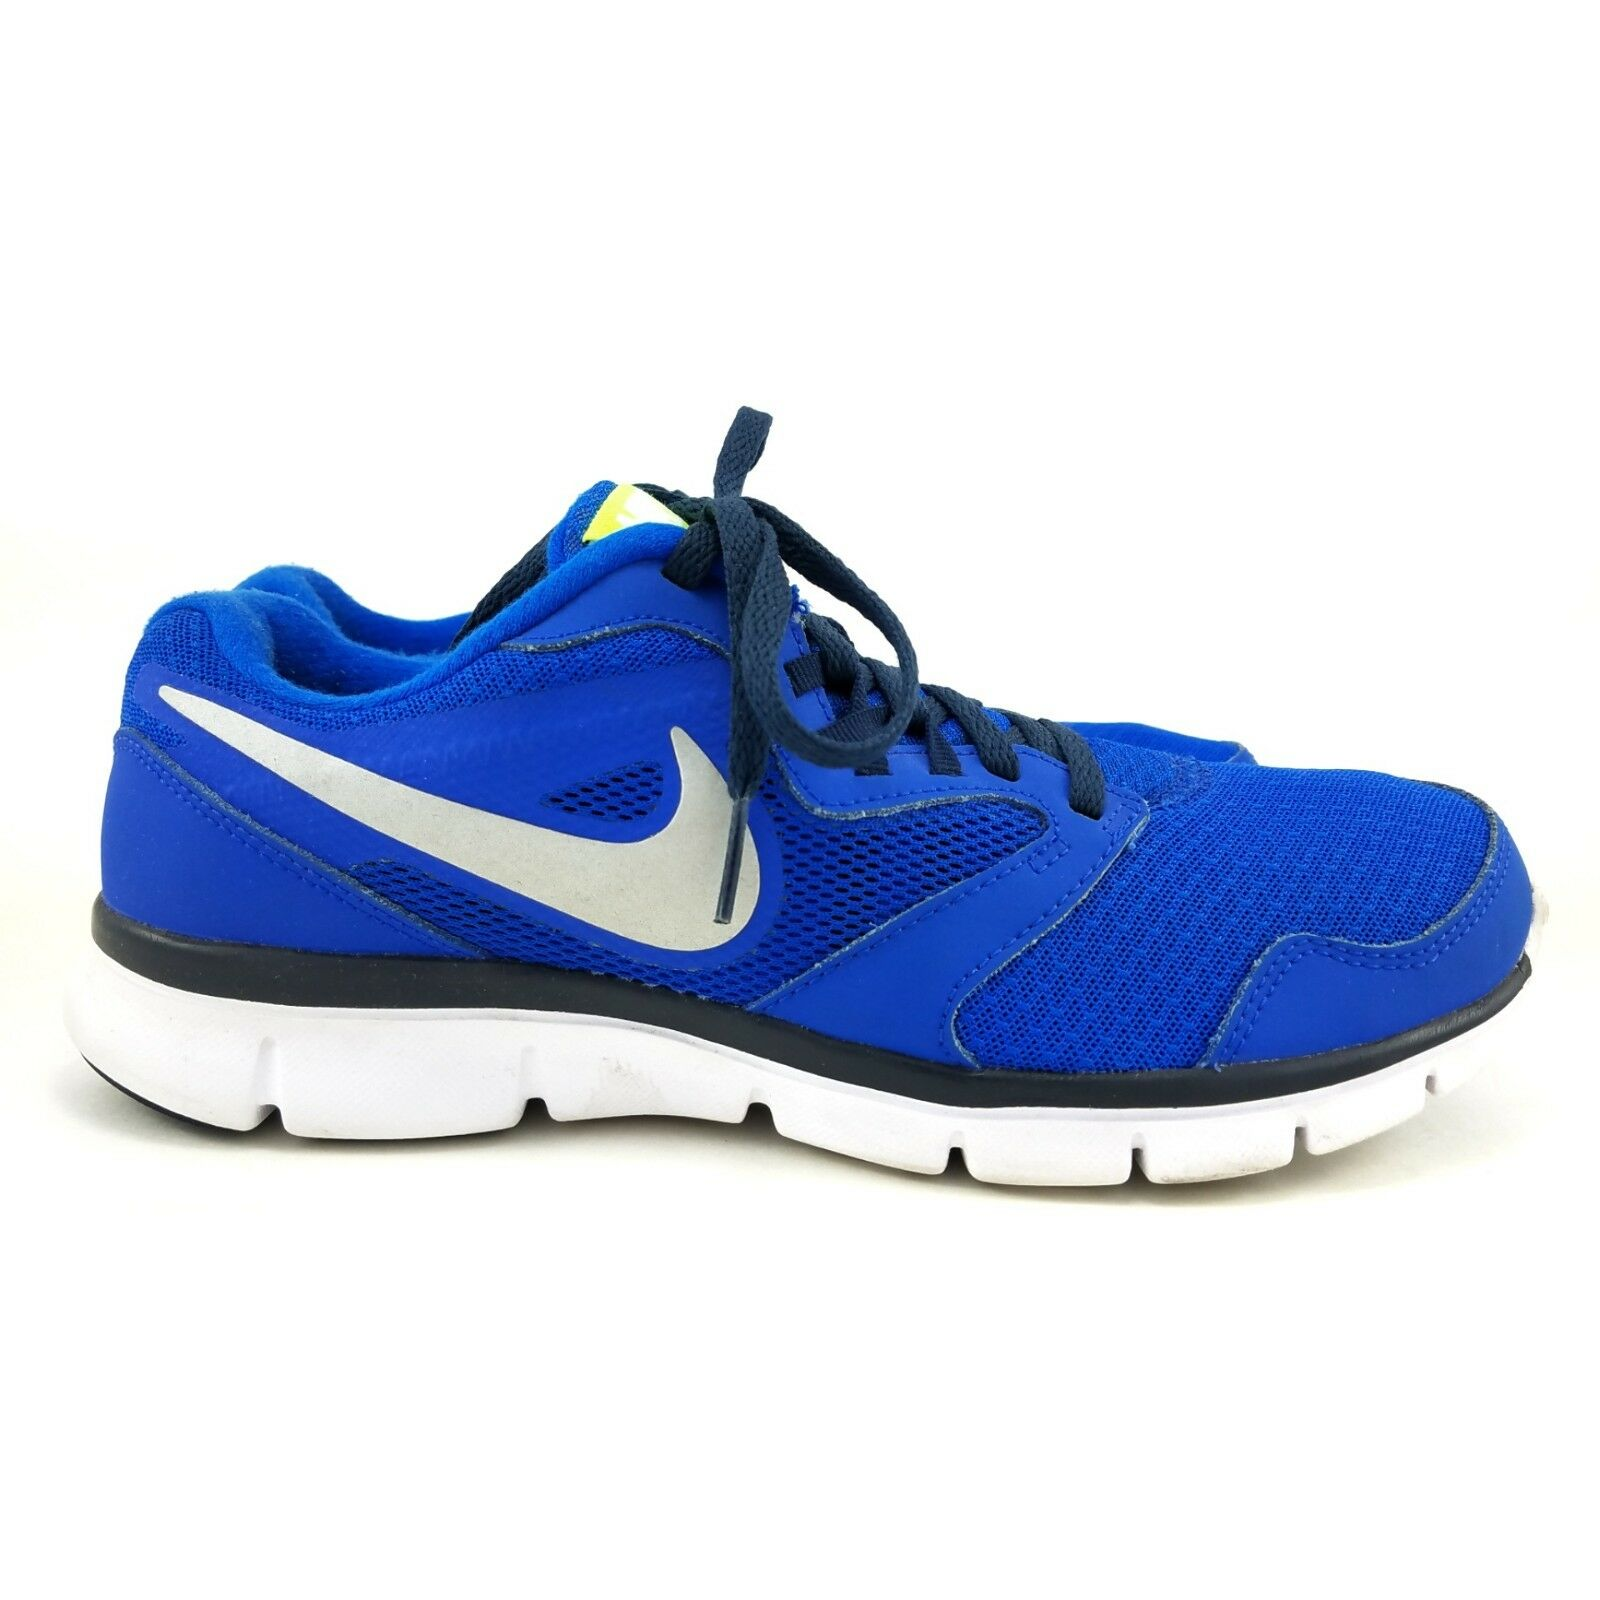 938c2017d6d ... Nike Running shoes size-8 Mens Flex Experience rn 3 3 3 8844ab ...